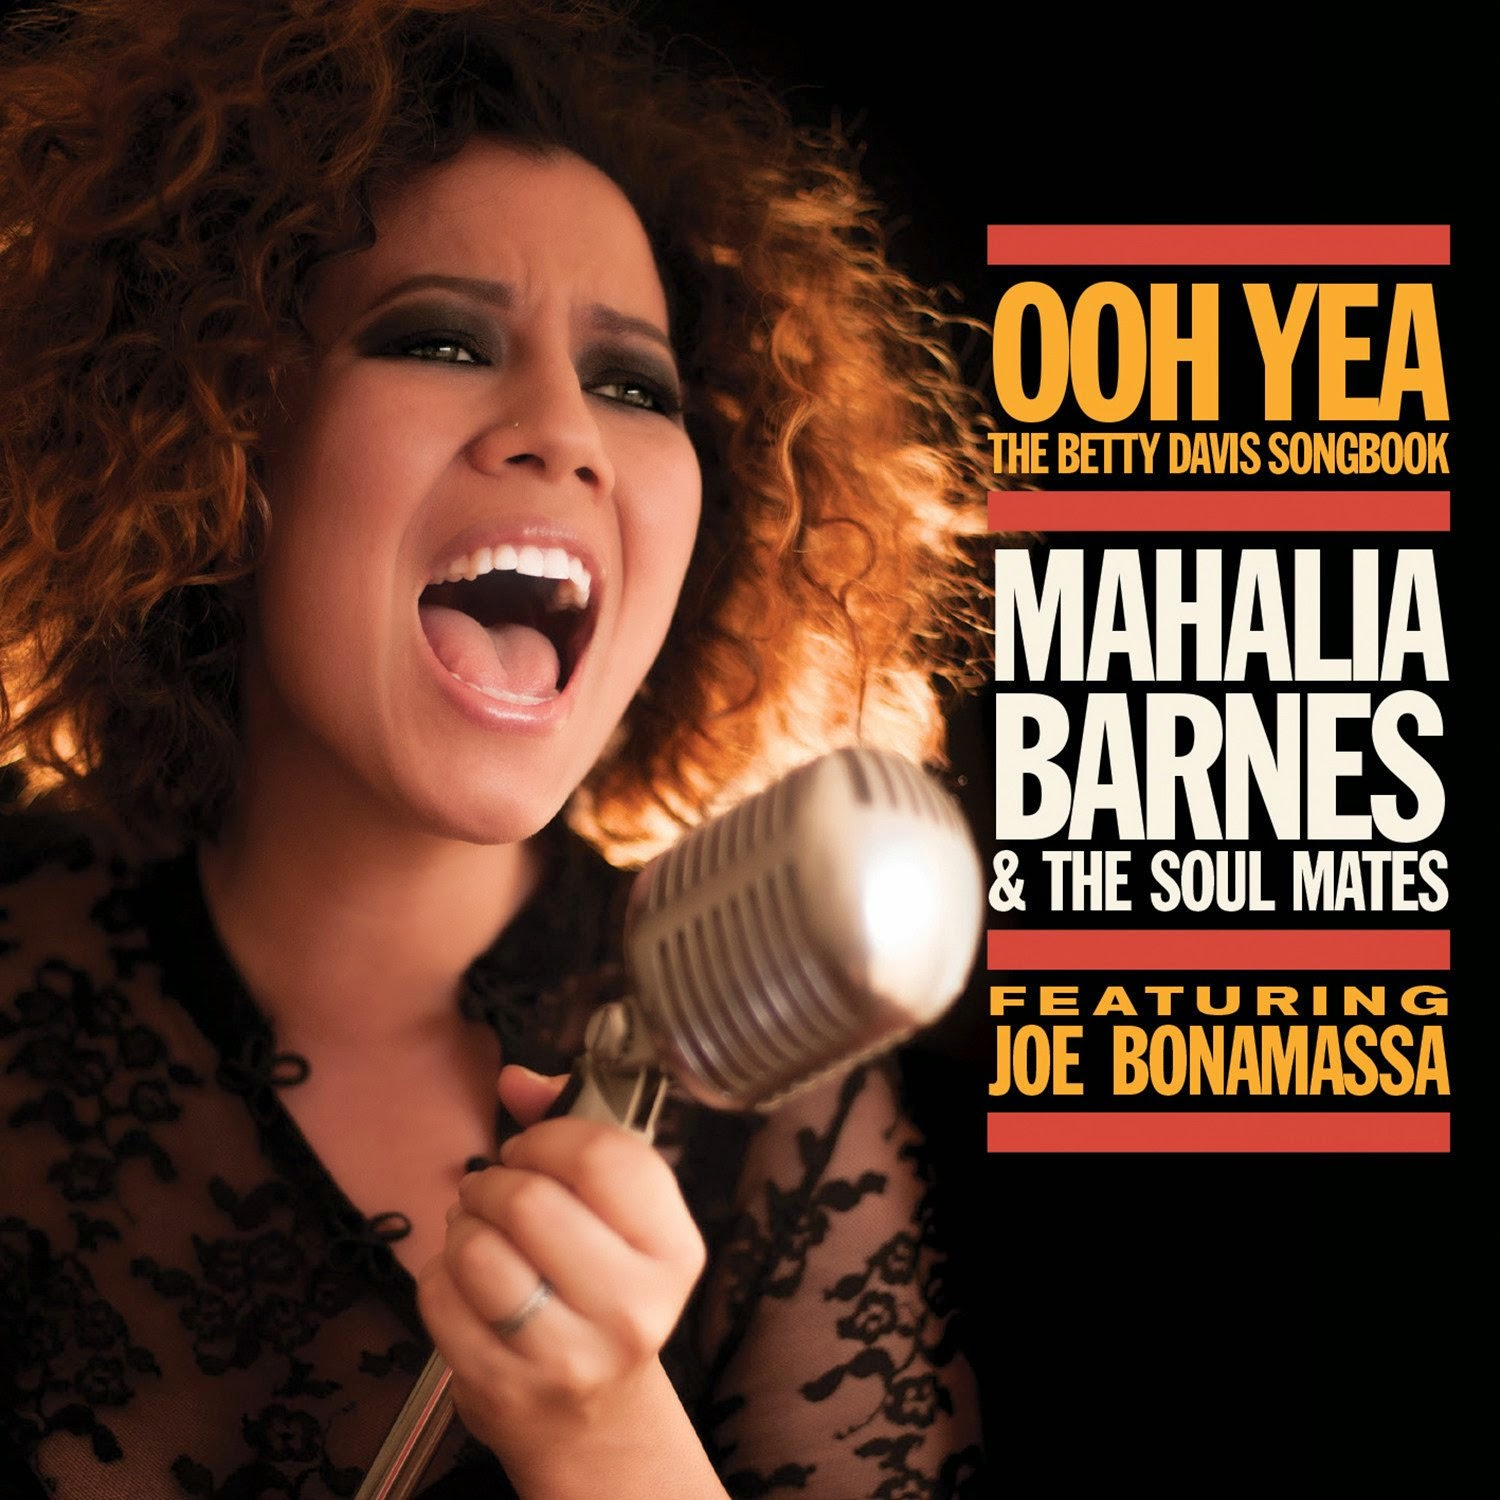 JAZZ CHILL Mahalia Barnes Amp The Soul Mates To Release Album Of Bette Davis Covers